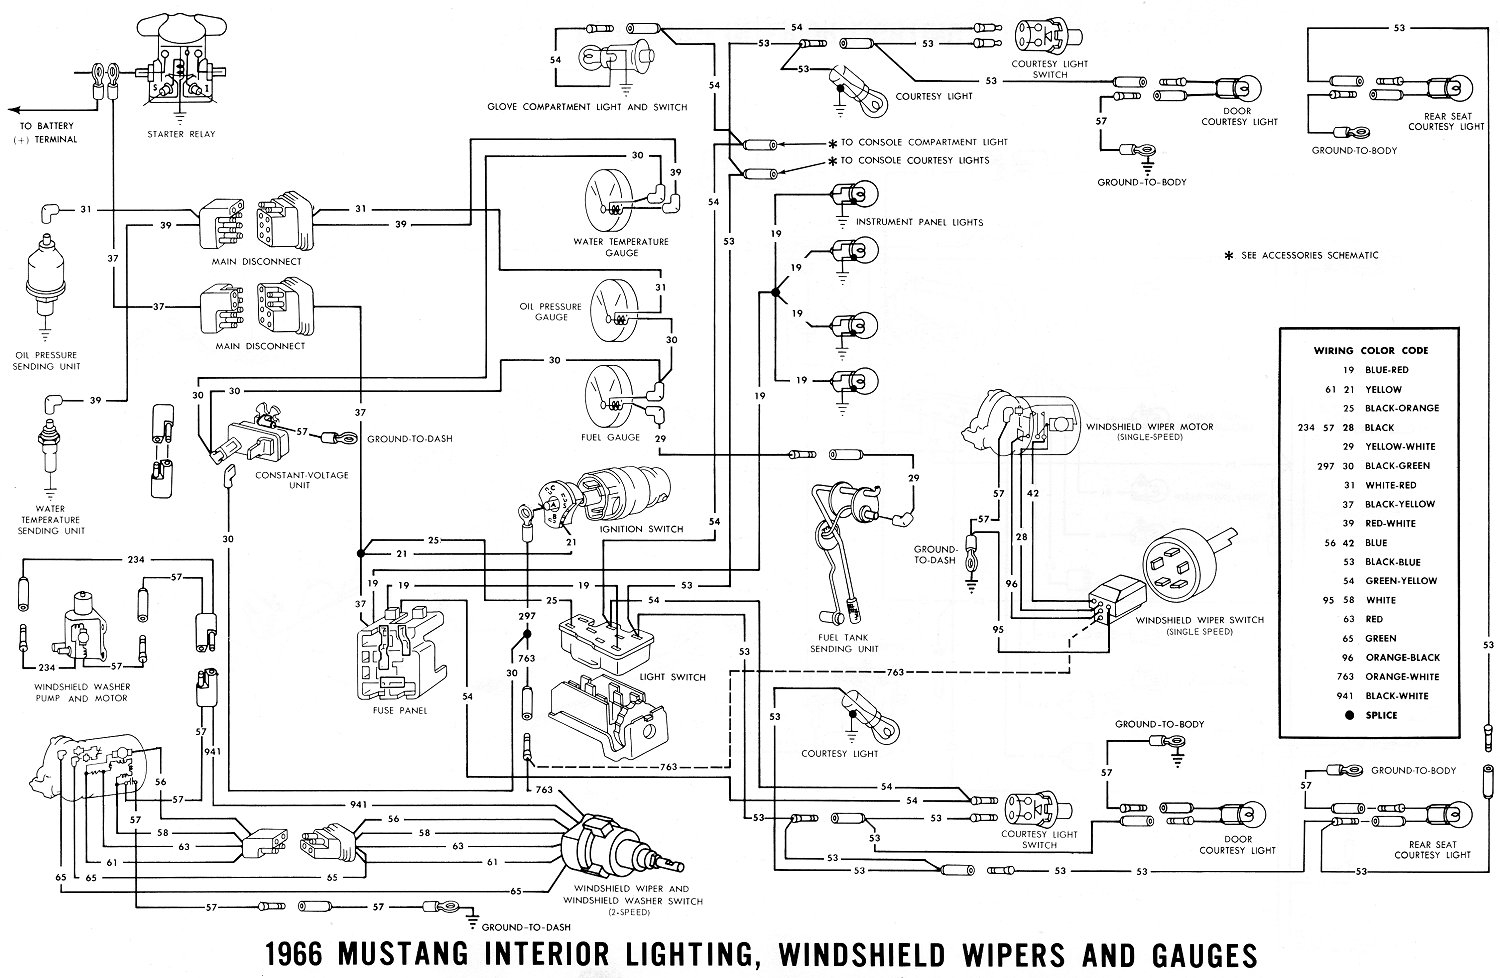 1965 mustang ignition wiring diagram Download-vintage mustang wiring diagrams rh midlife66 1967 Mustang Ignition Wiring Diagram 1968 mustang wiring diagram 15-s